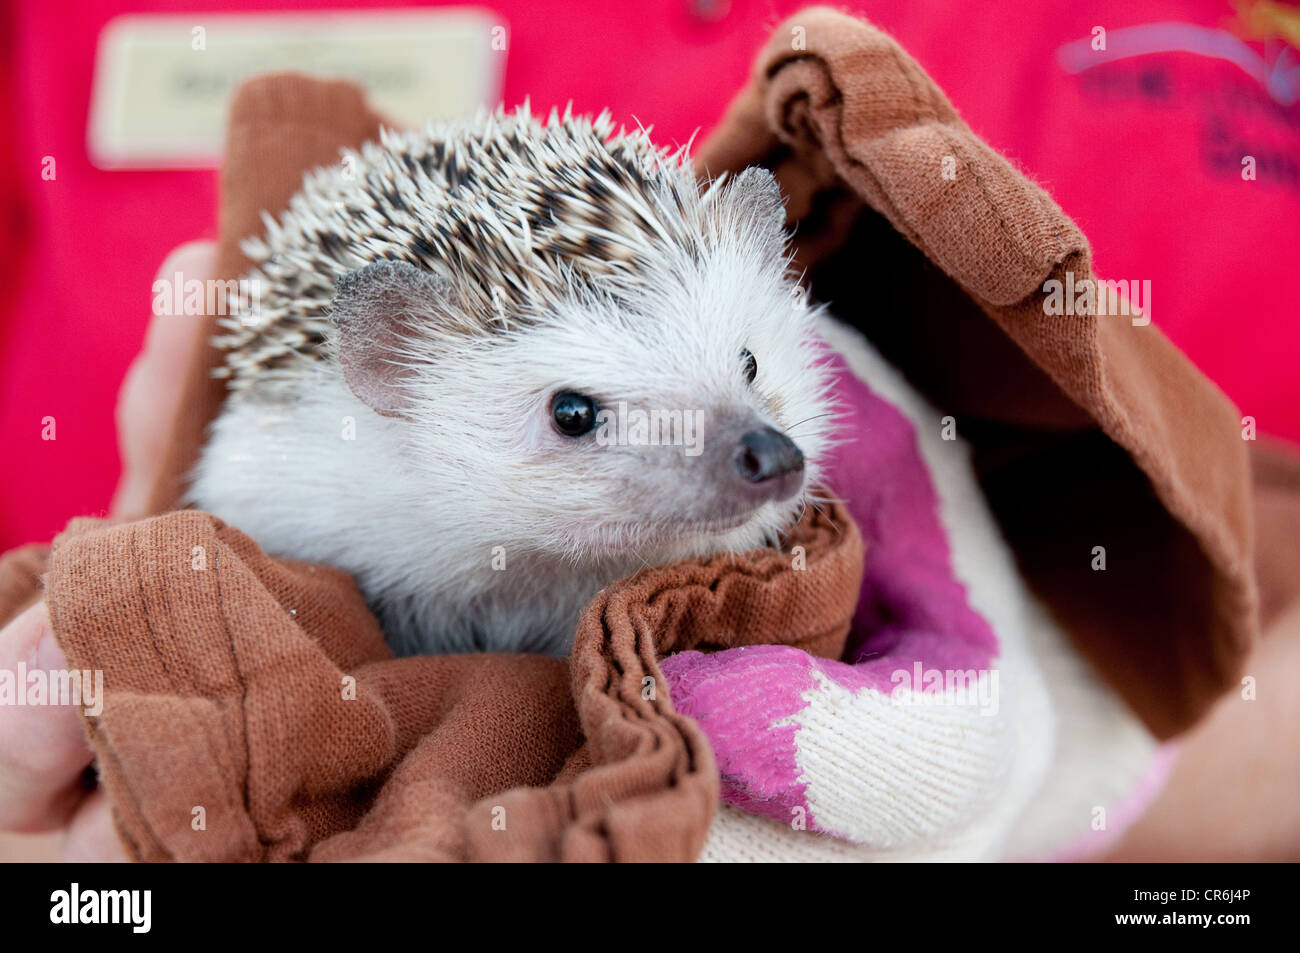 closeup of hedgehog wrapped in brown towel with red background - Stock Image